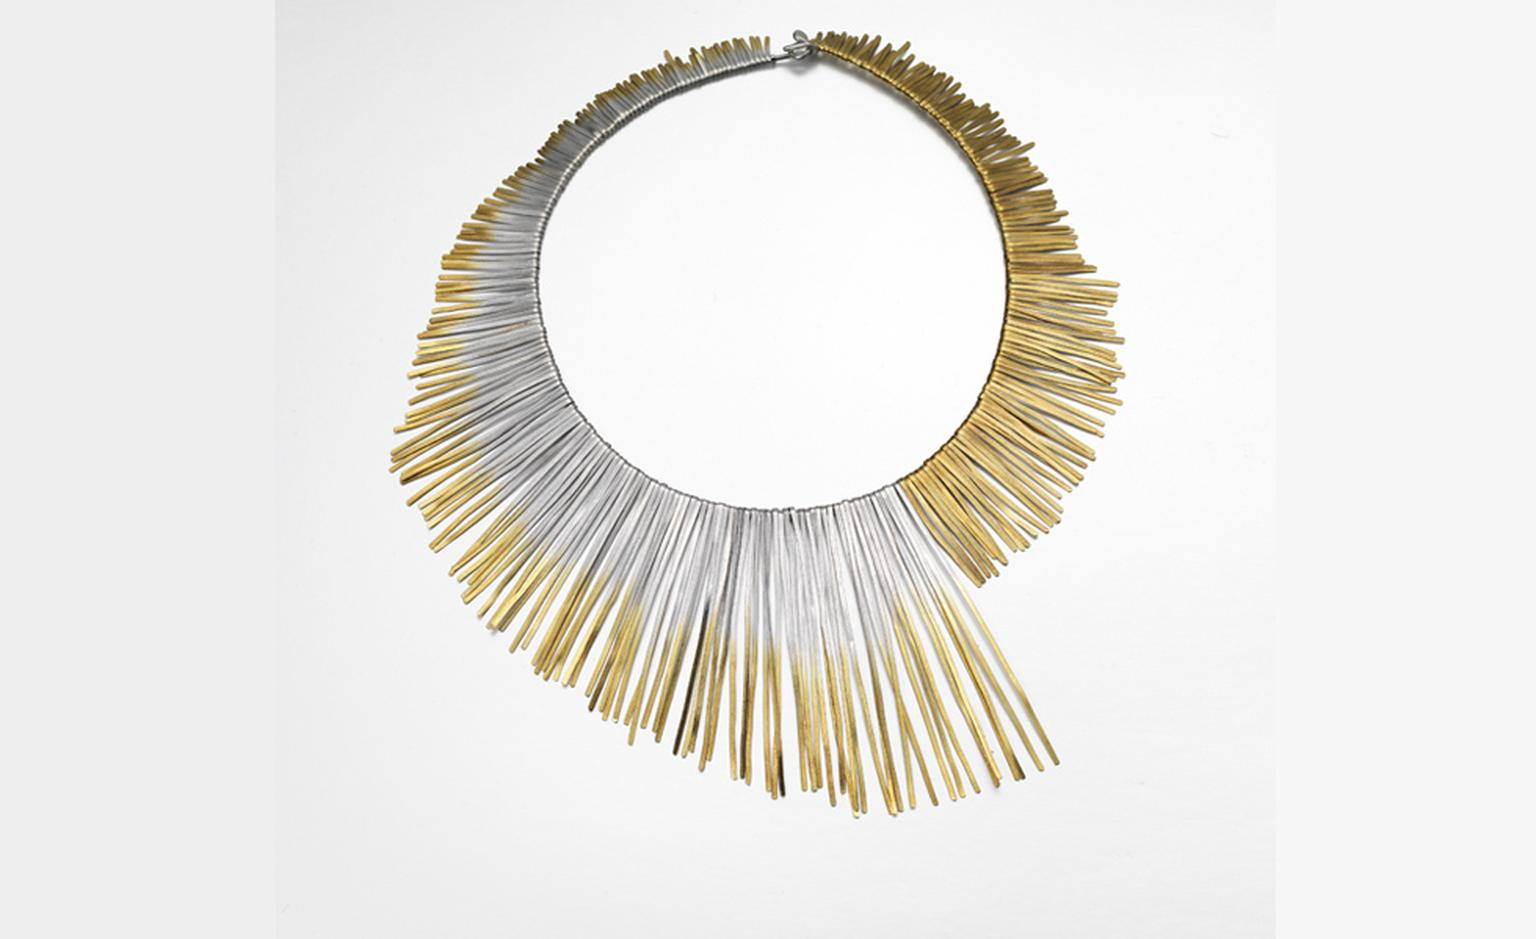 Solar Shimmer Neck, piece by Melanie Ankers. Silver and gold-plated silver inspired in its design by solar flares. Price from £920